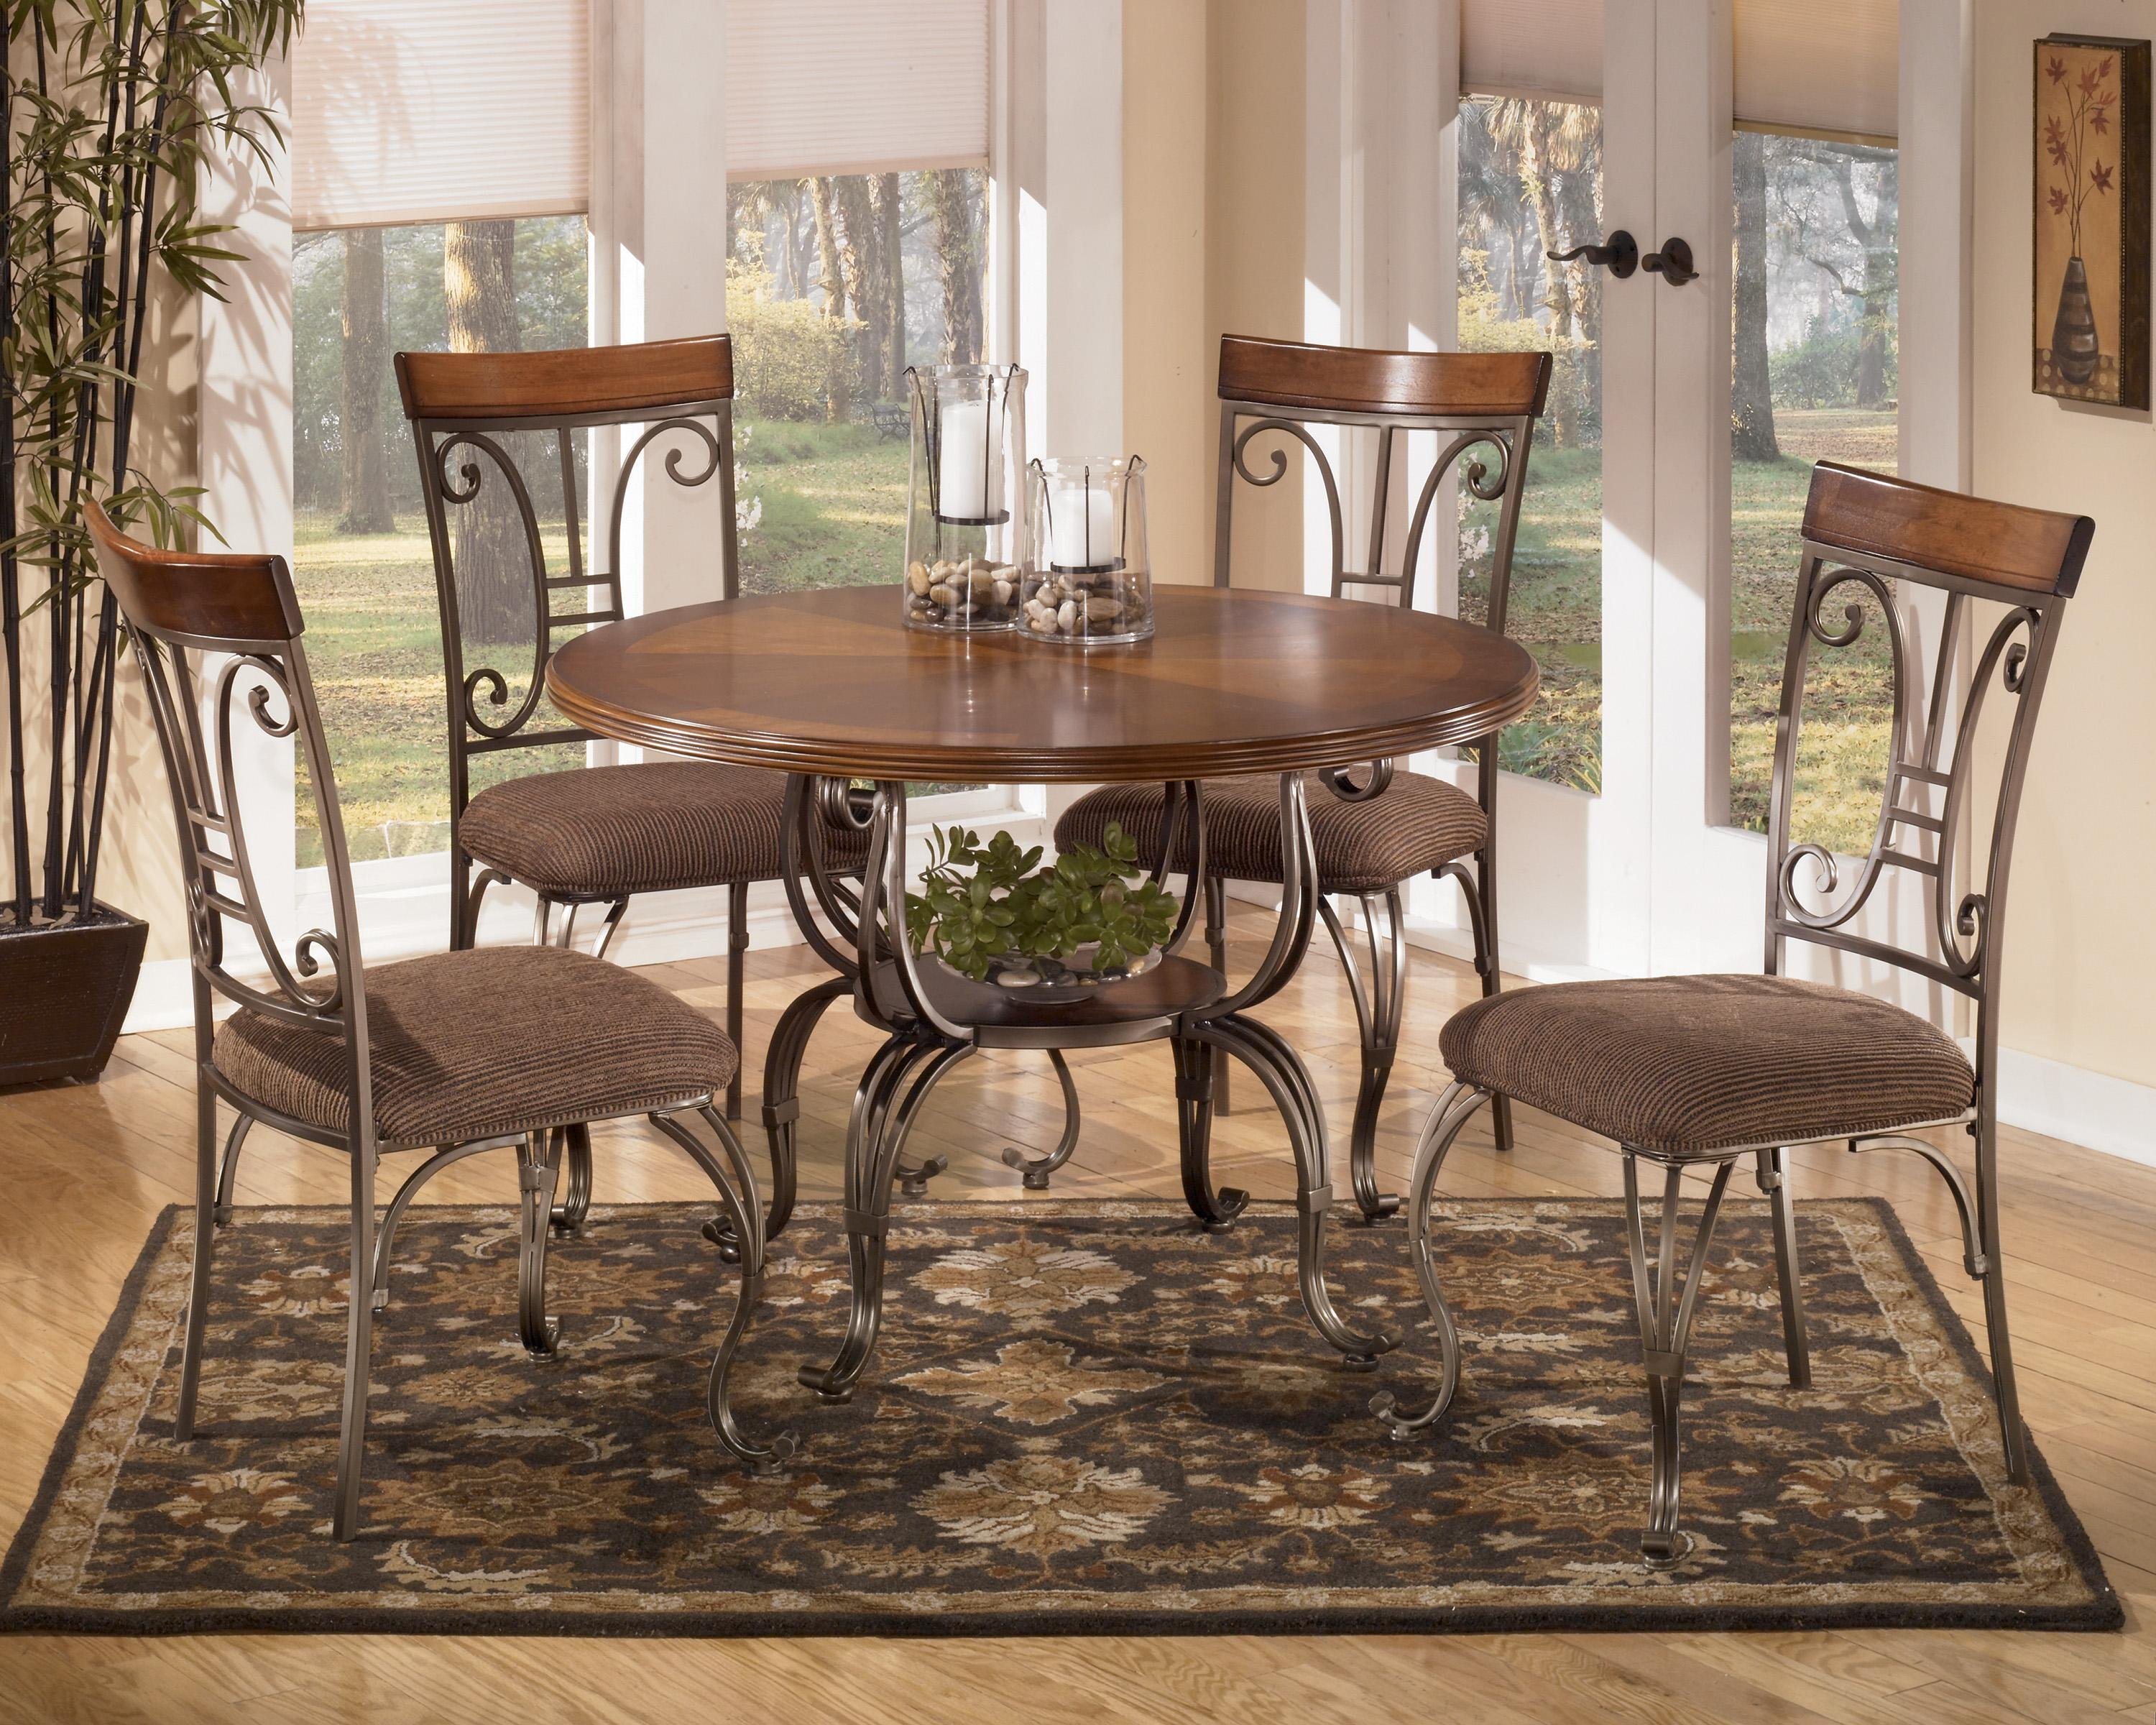 Signature Design by Ashley Plentywood 5-Piece Round Dining Table Set - AHFA - Dining 5 Piece Set Dealer Locator & Signature Design by Ashley Plentywood 5-Piece Round Dining Table Set ...